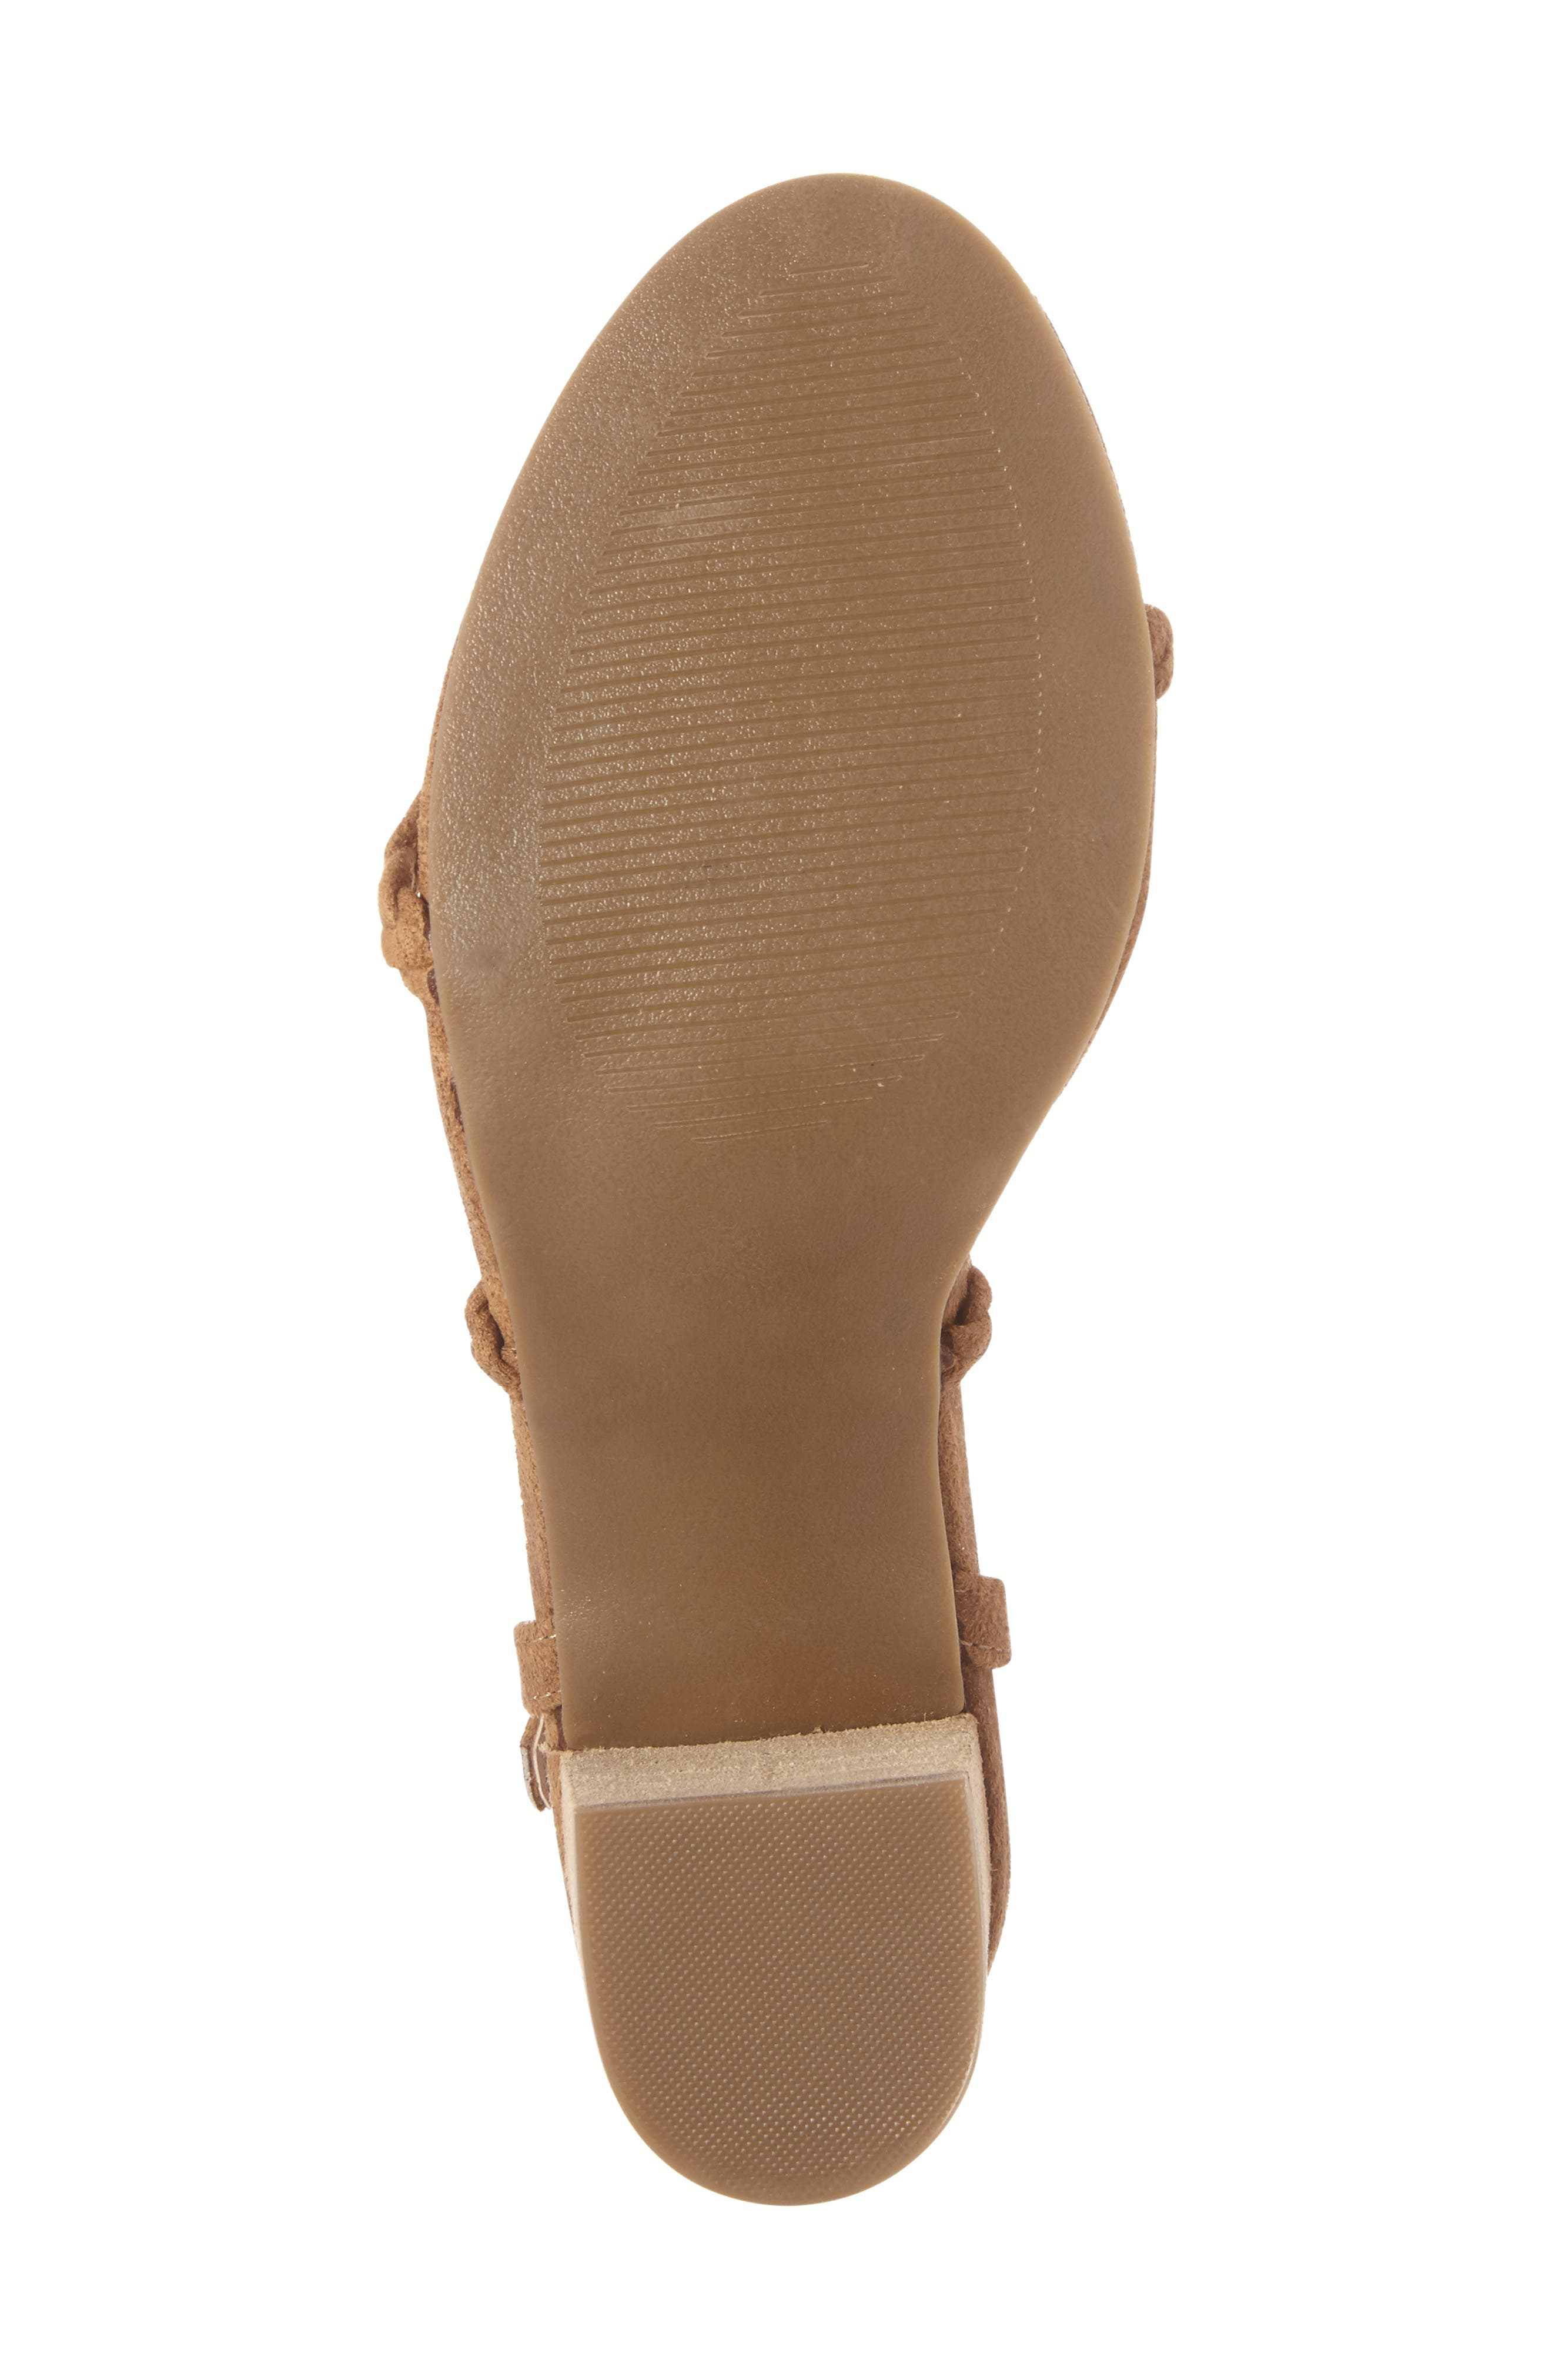 Coconuts by Matisse Cora Sandal,                             Alternate thumbnail 4, color,                             287